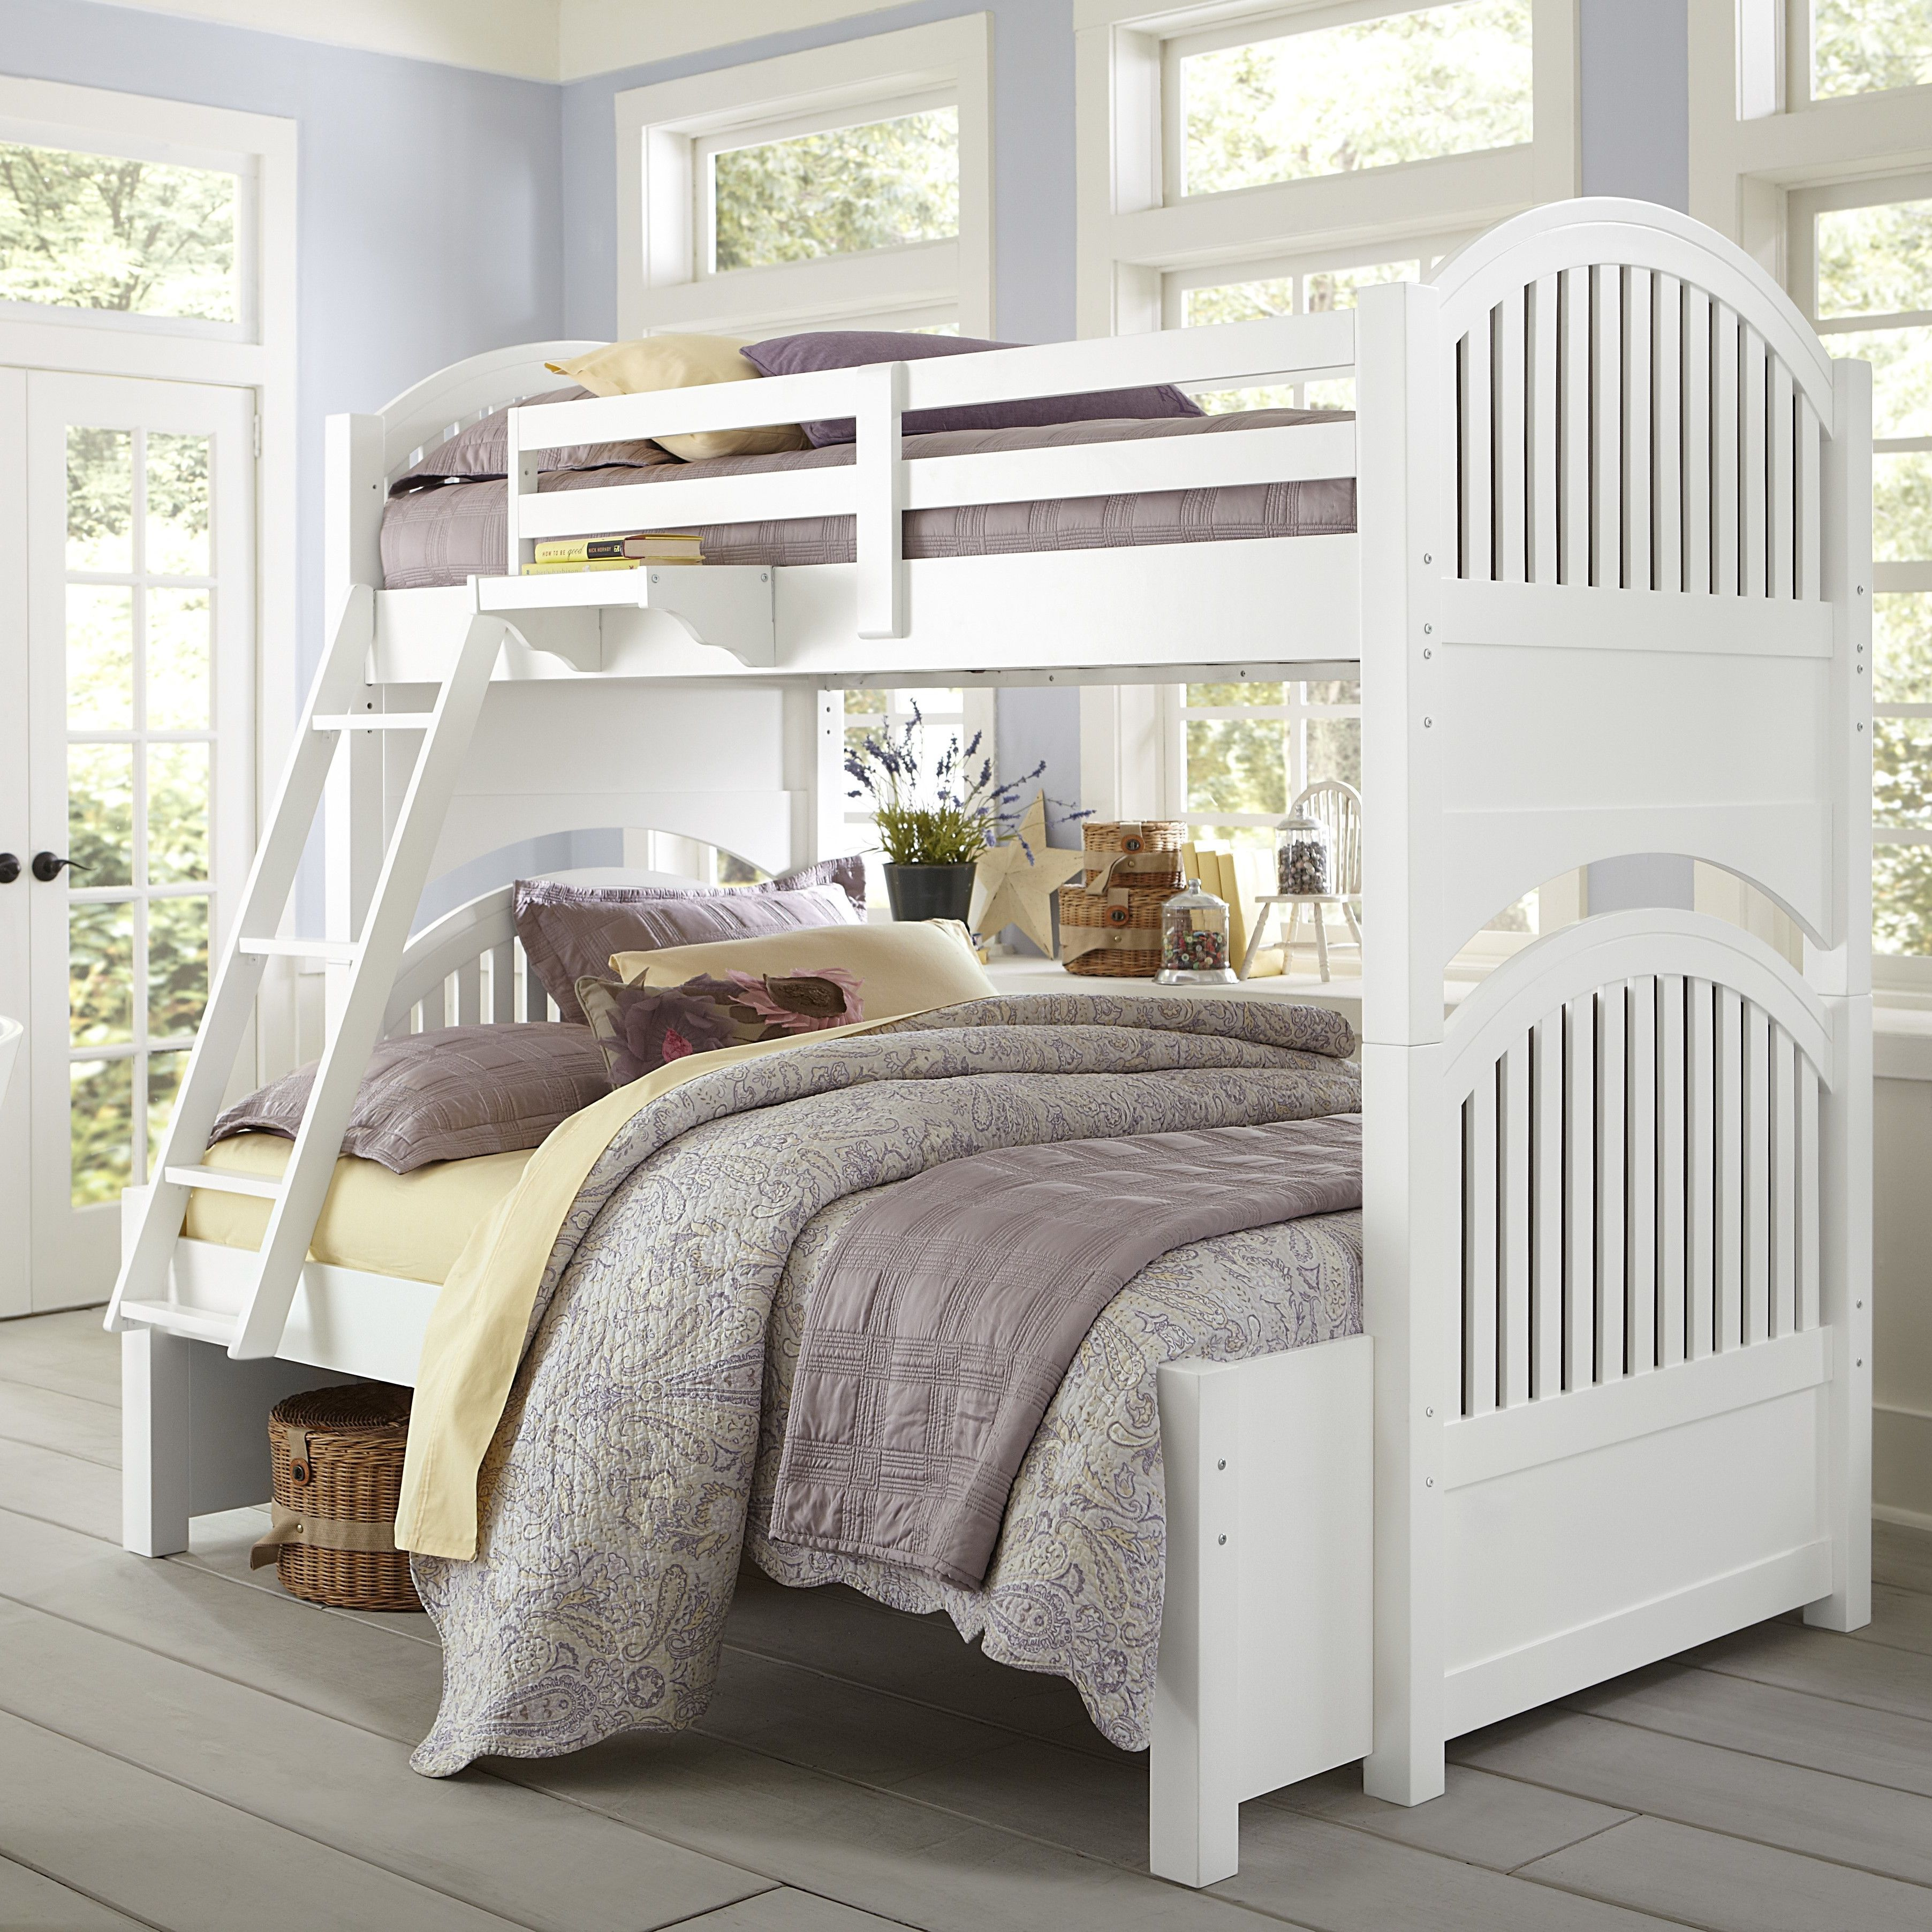 Shop Wayfair for Bunk & Loft Beds to match every style and